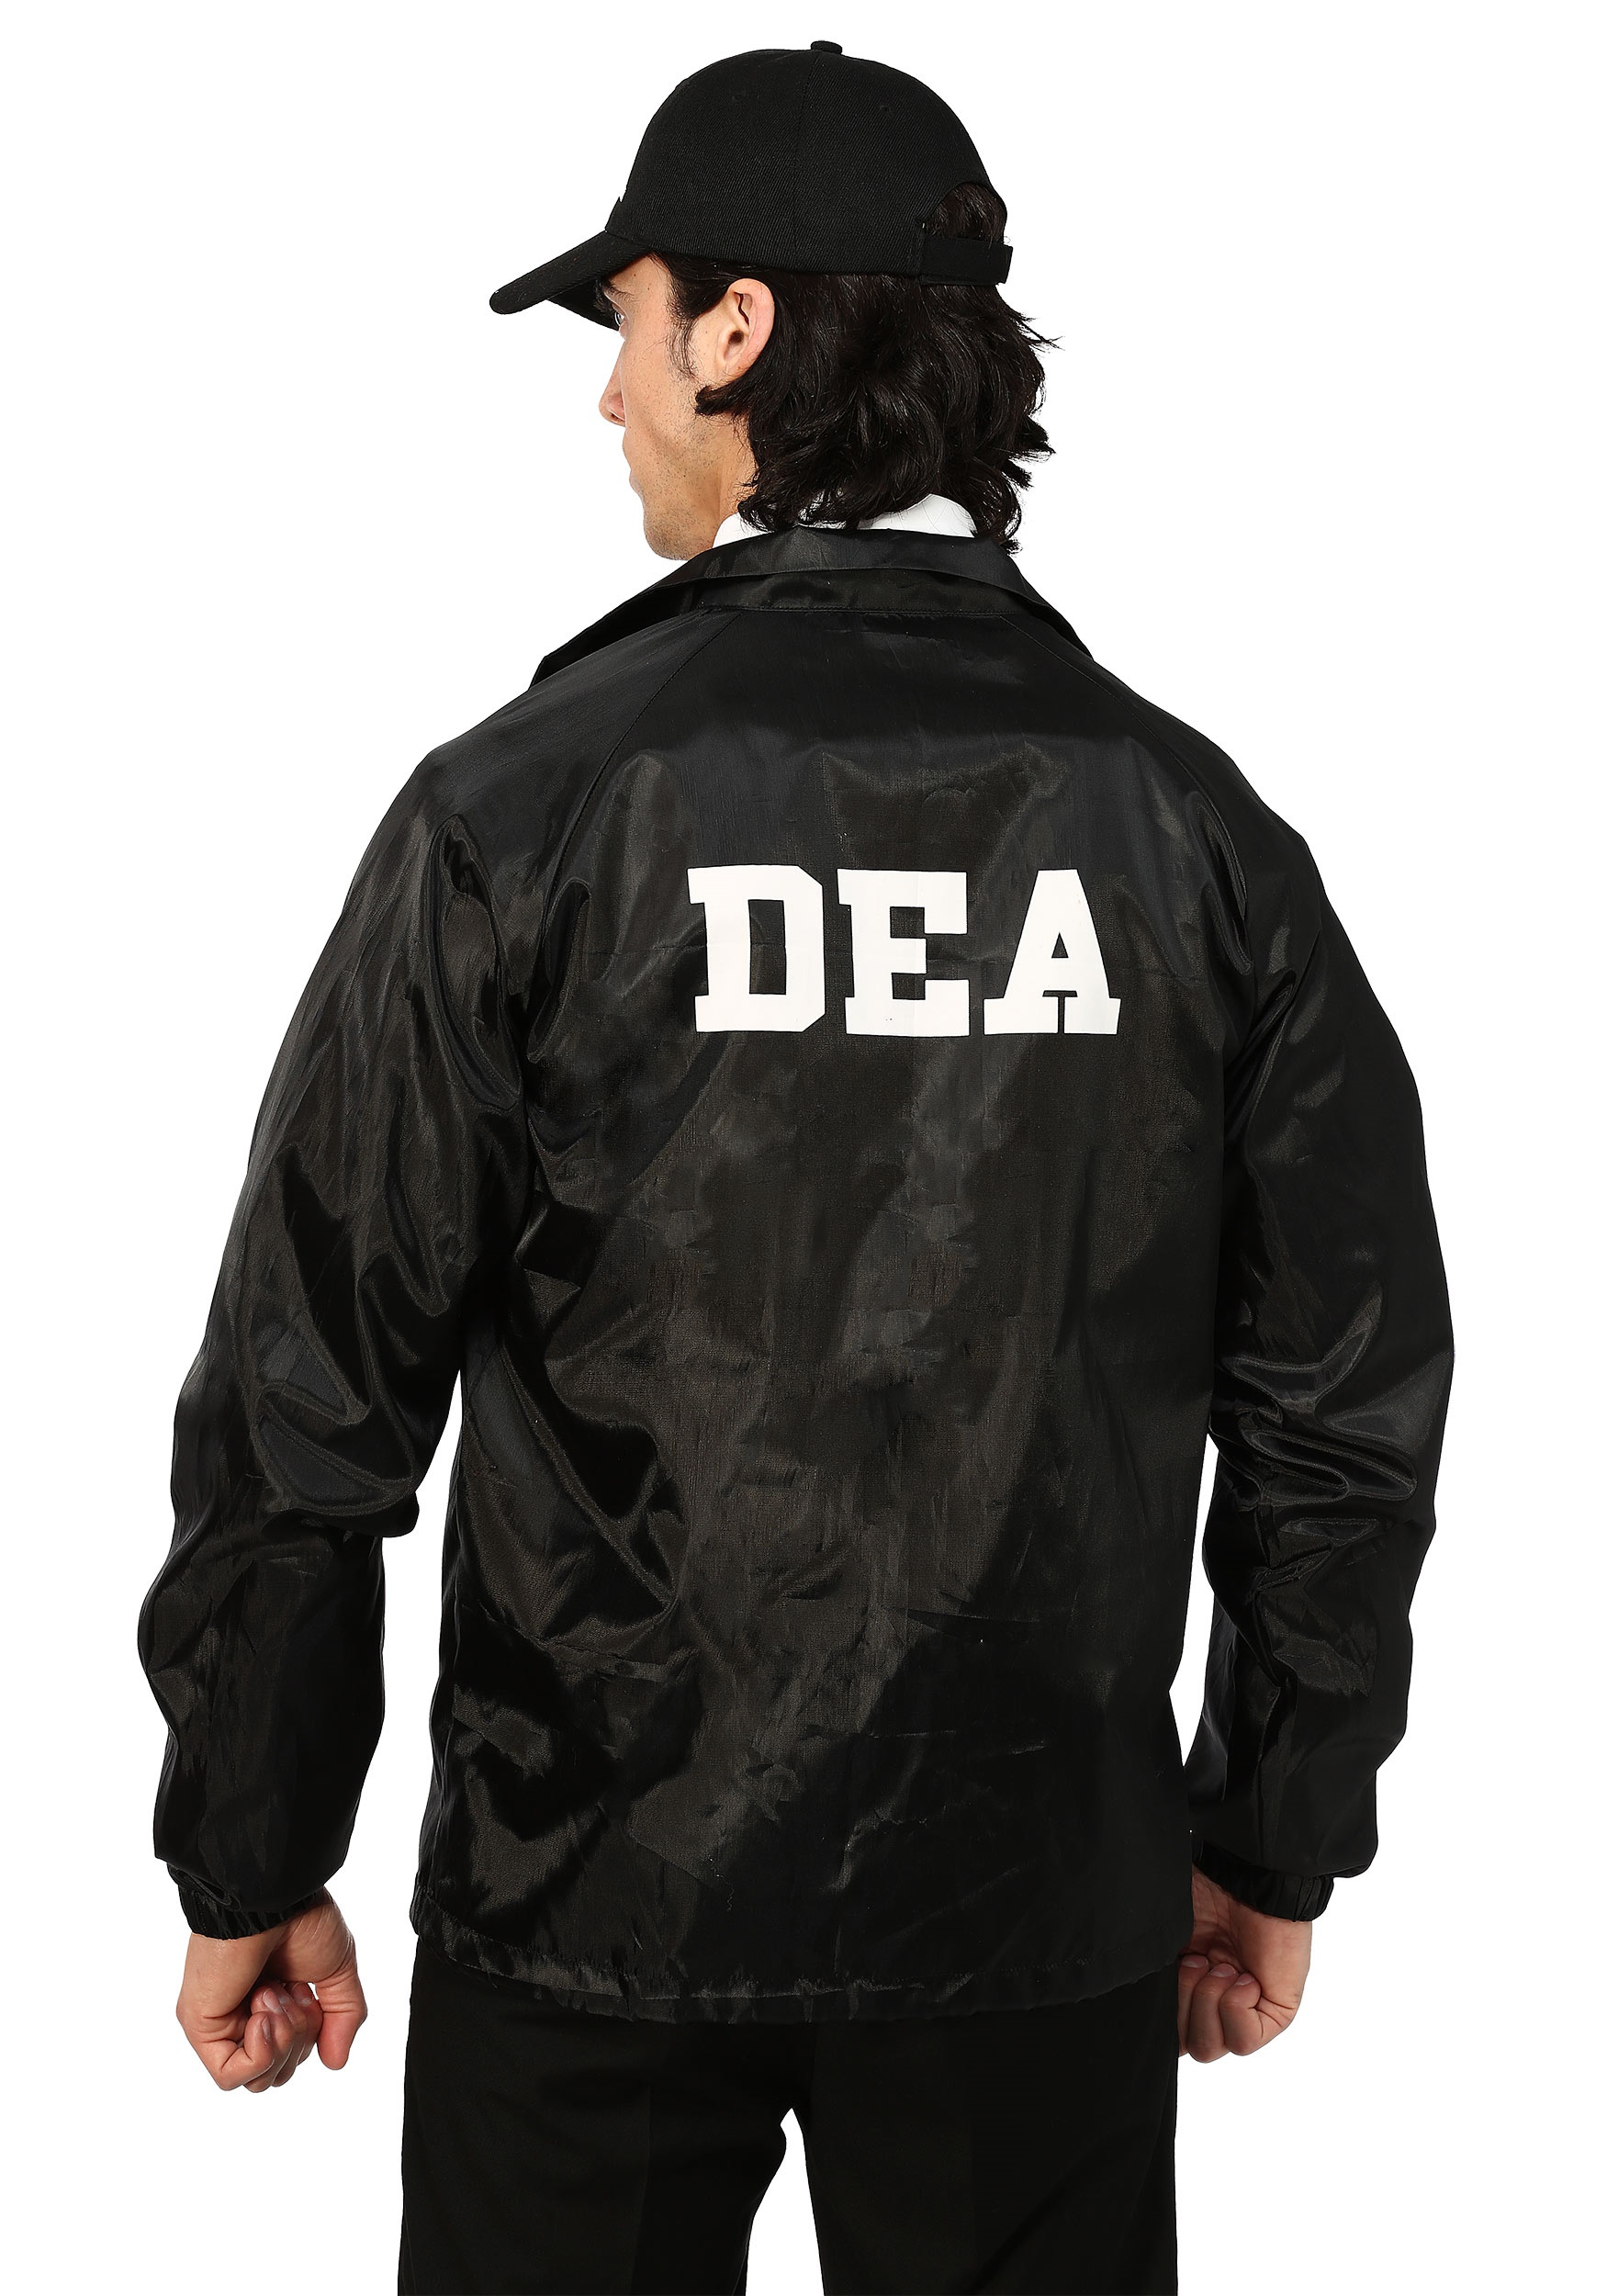 Dea Agent Costume For Adults